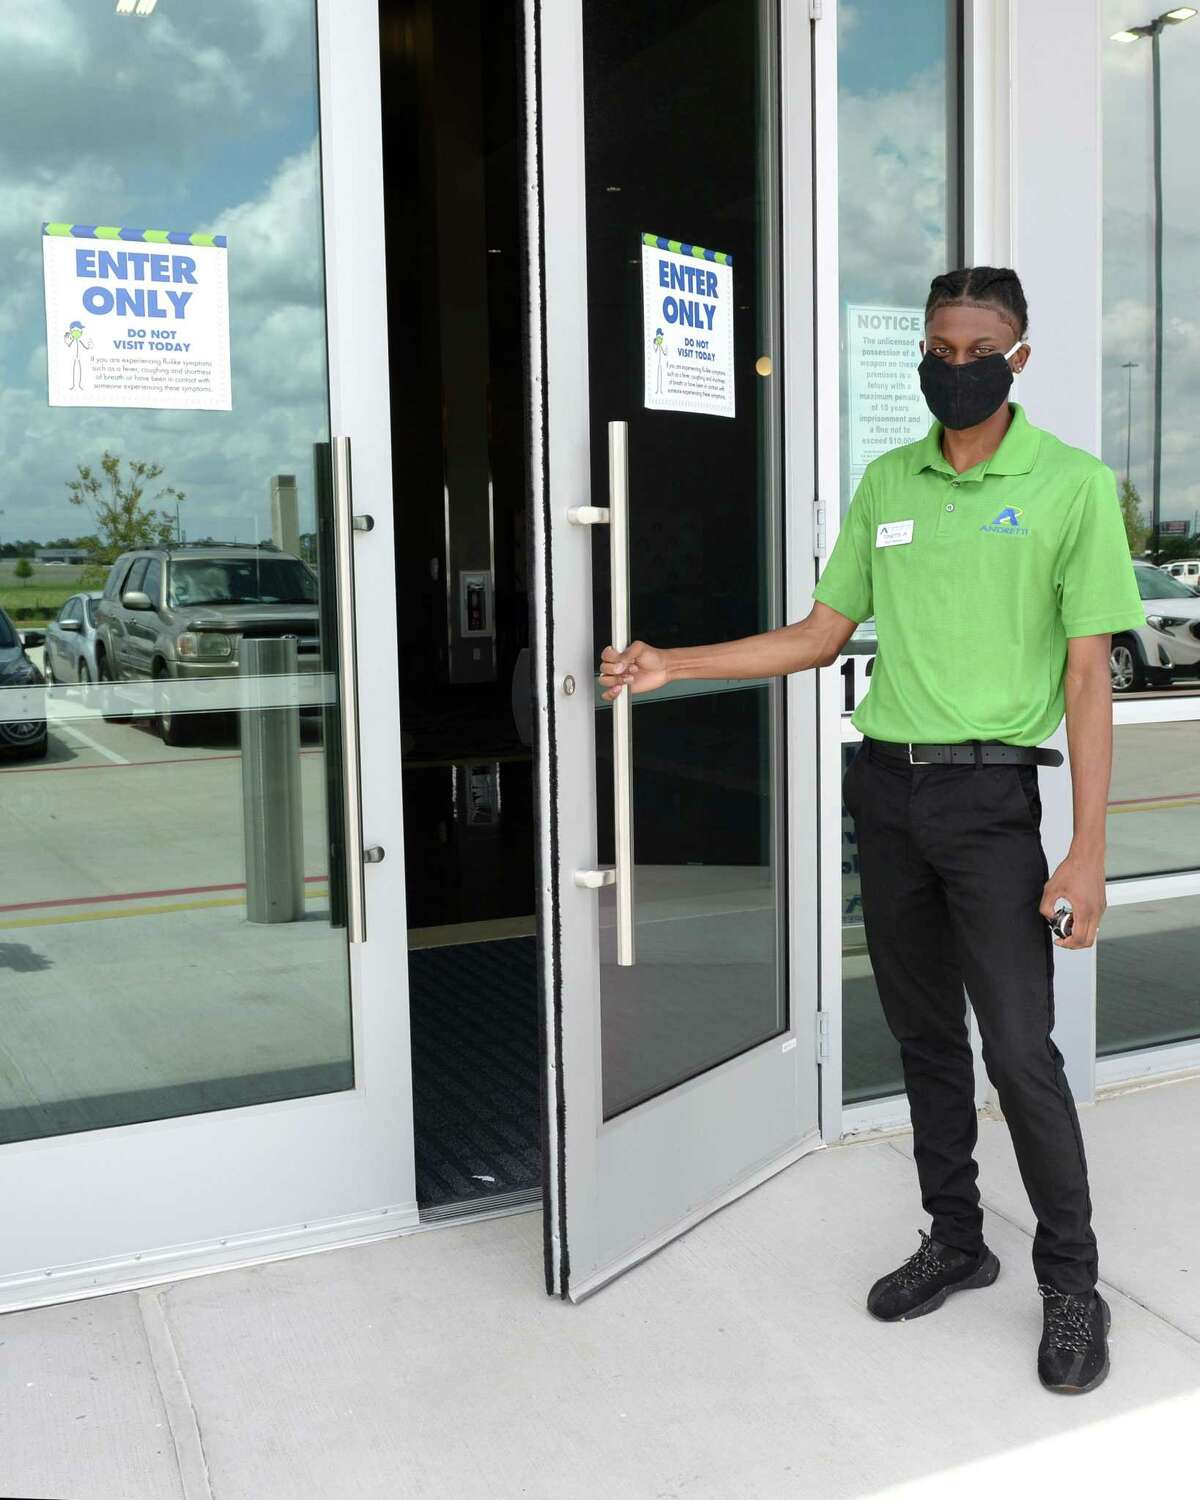 Team Member Toinetee Amos Jr. welcomes guests to Andretti Indoor Karting & Games, Katy, TX on Thursday, May 28, 2020. Entrances and exits are marked for one-way traffic flow.